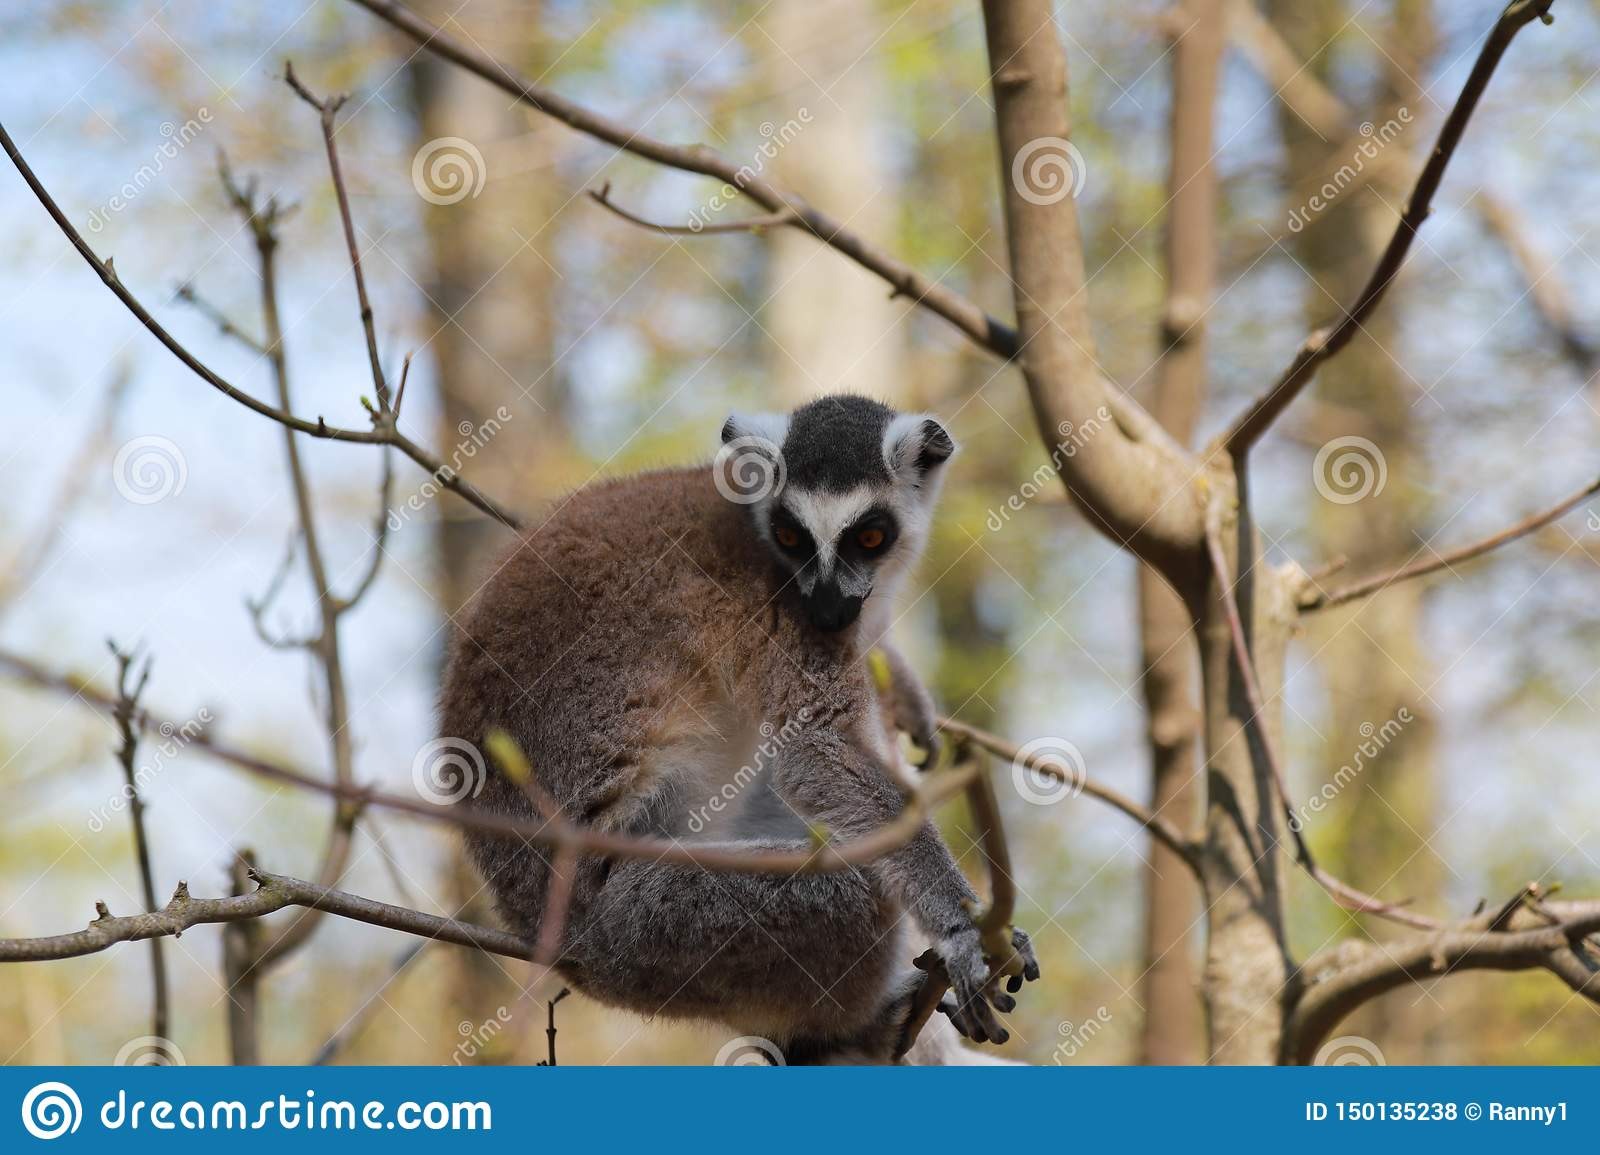 Lemur face portrait, sitting on a tree branch